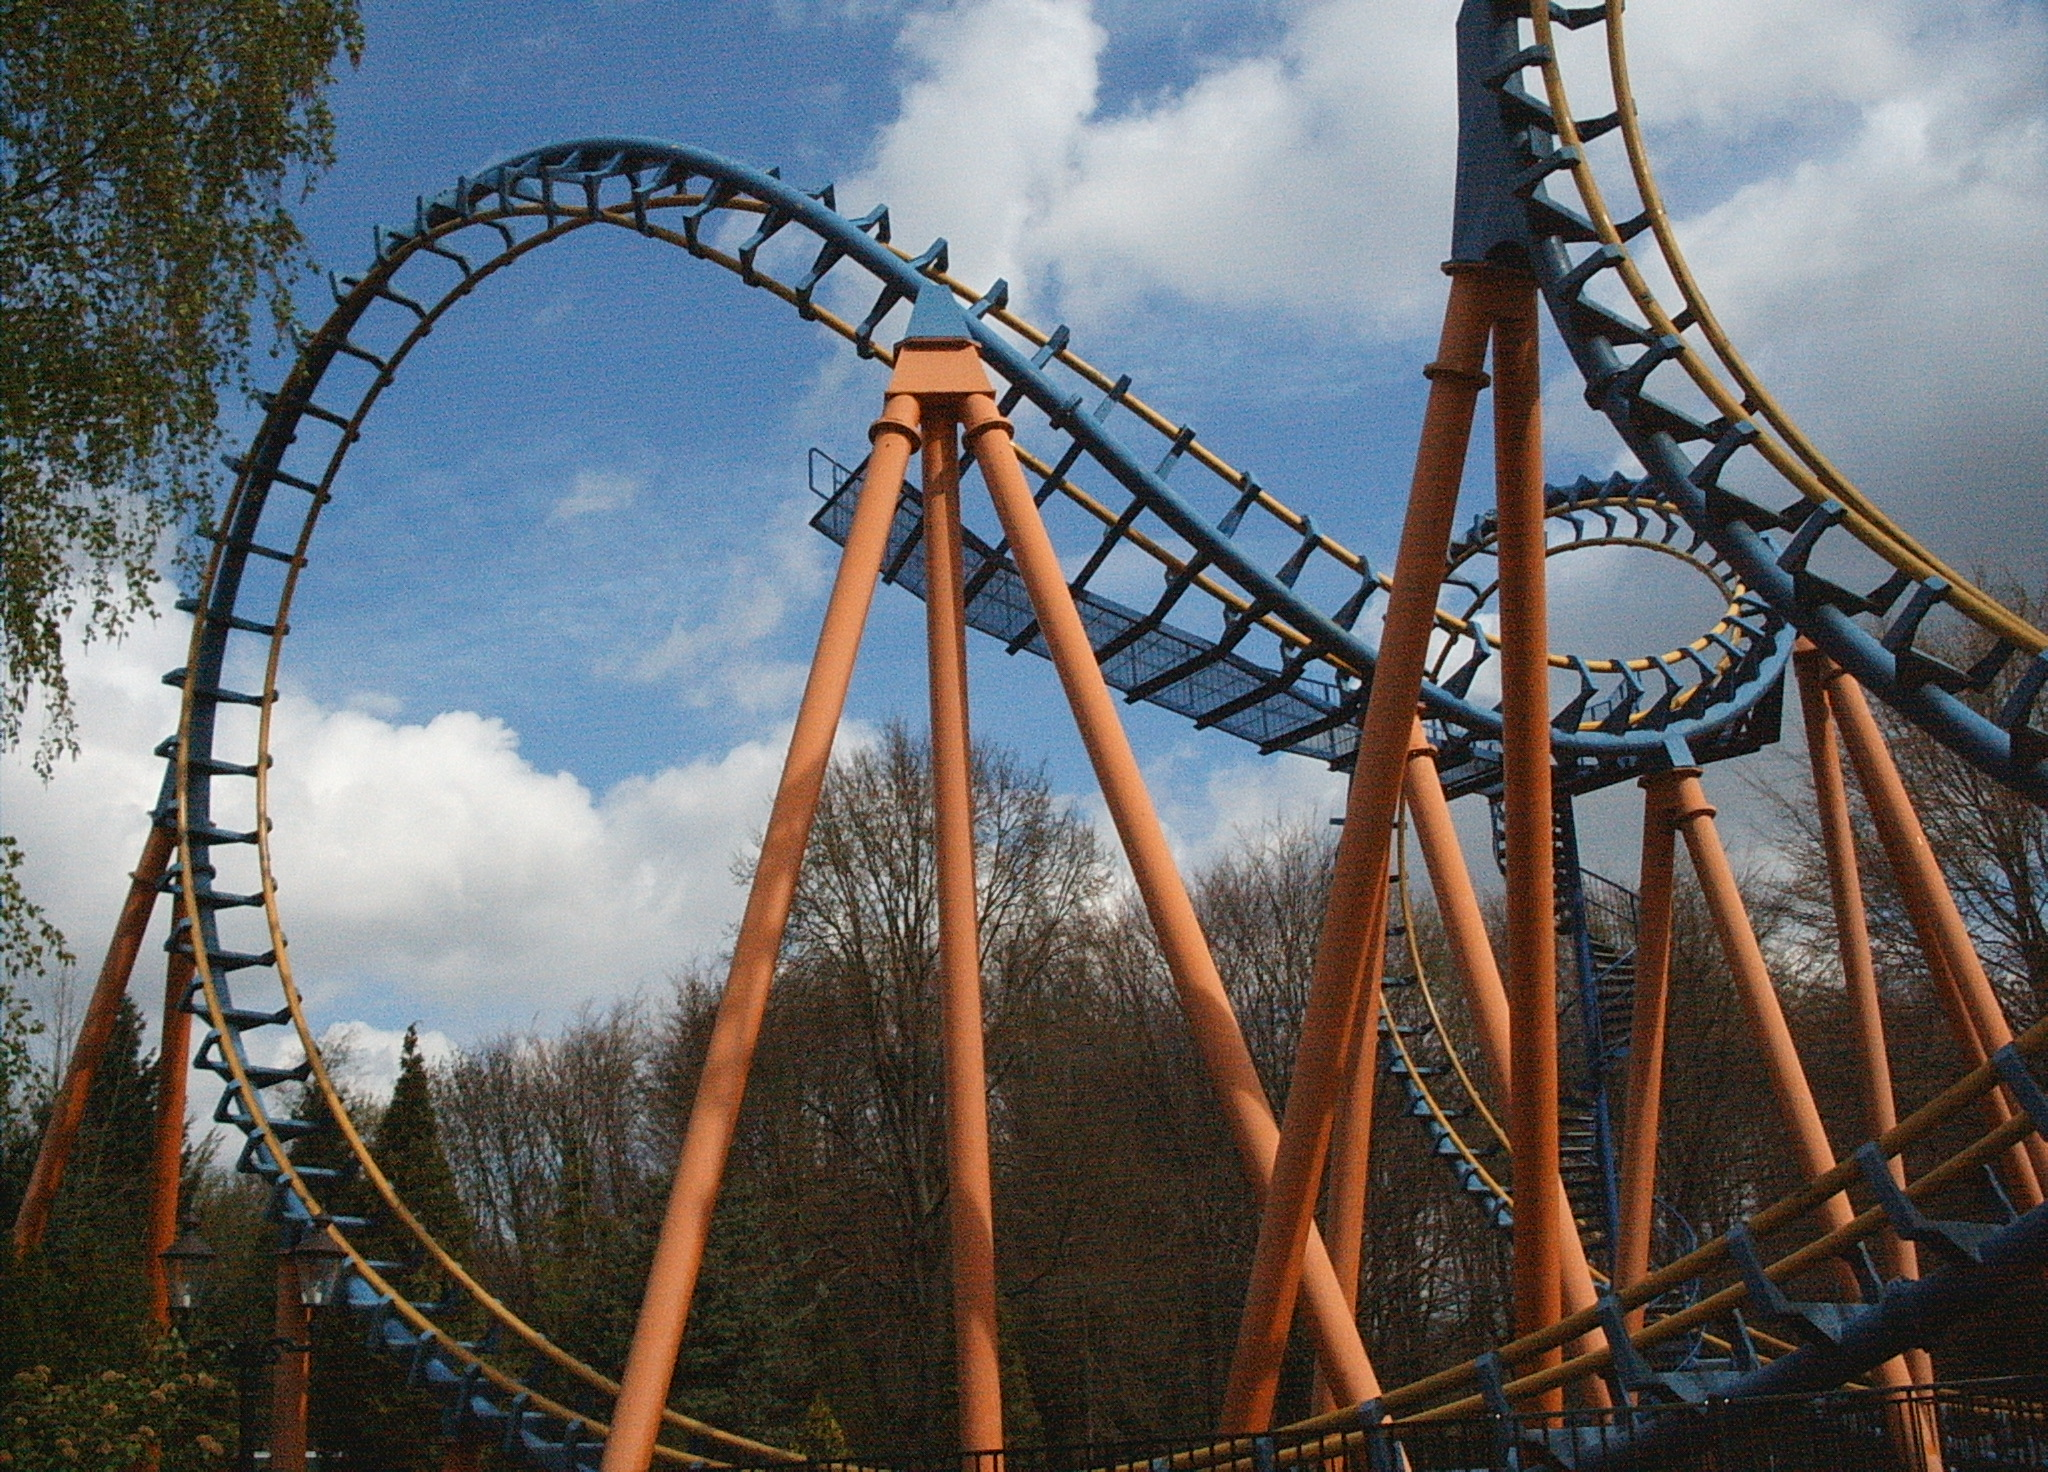 Real Life Stories #3: A tax efficient rollercoaster